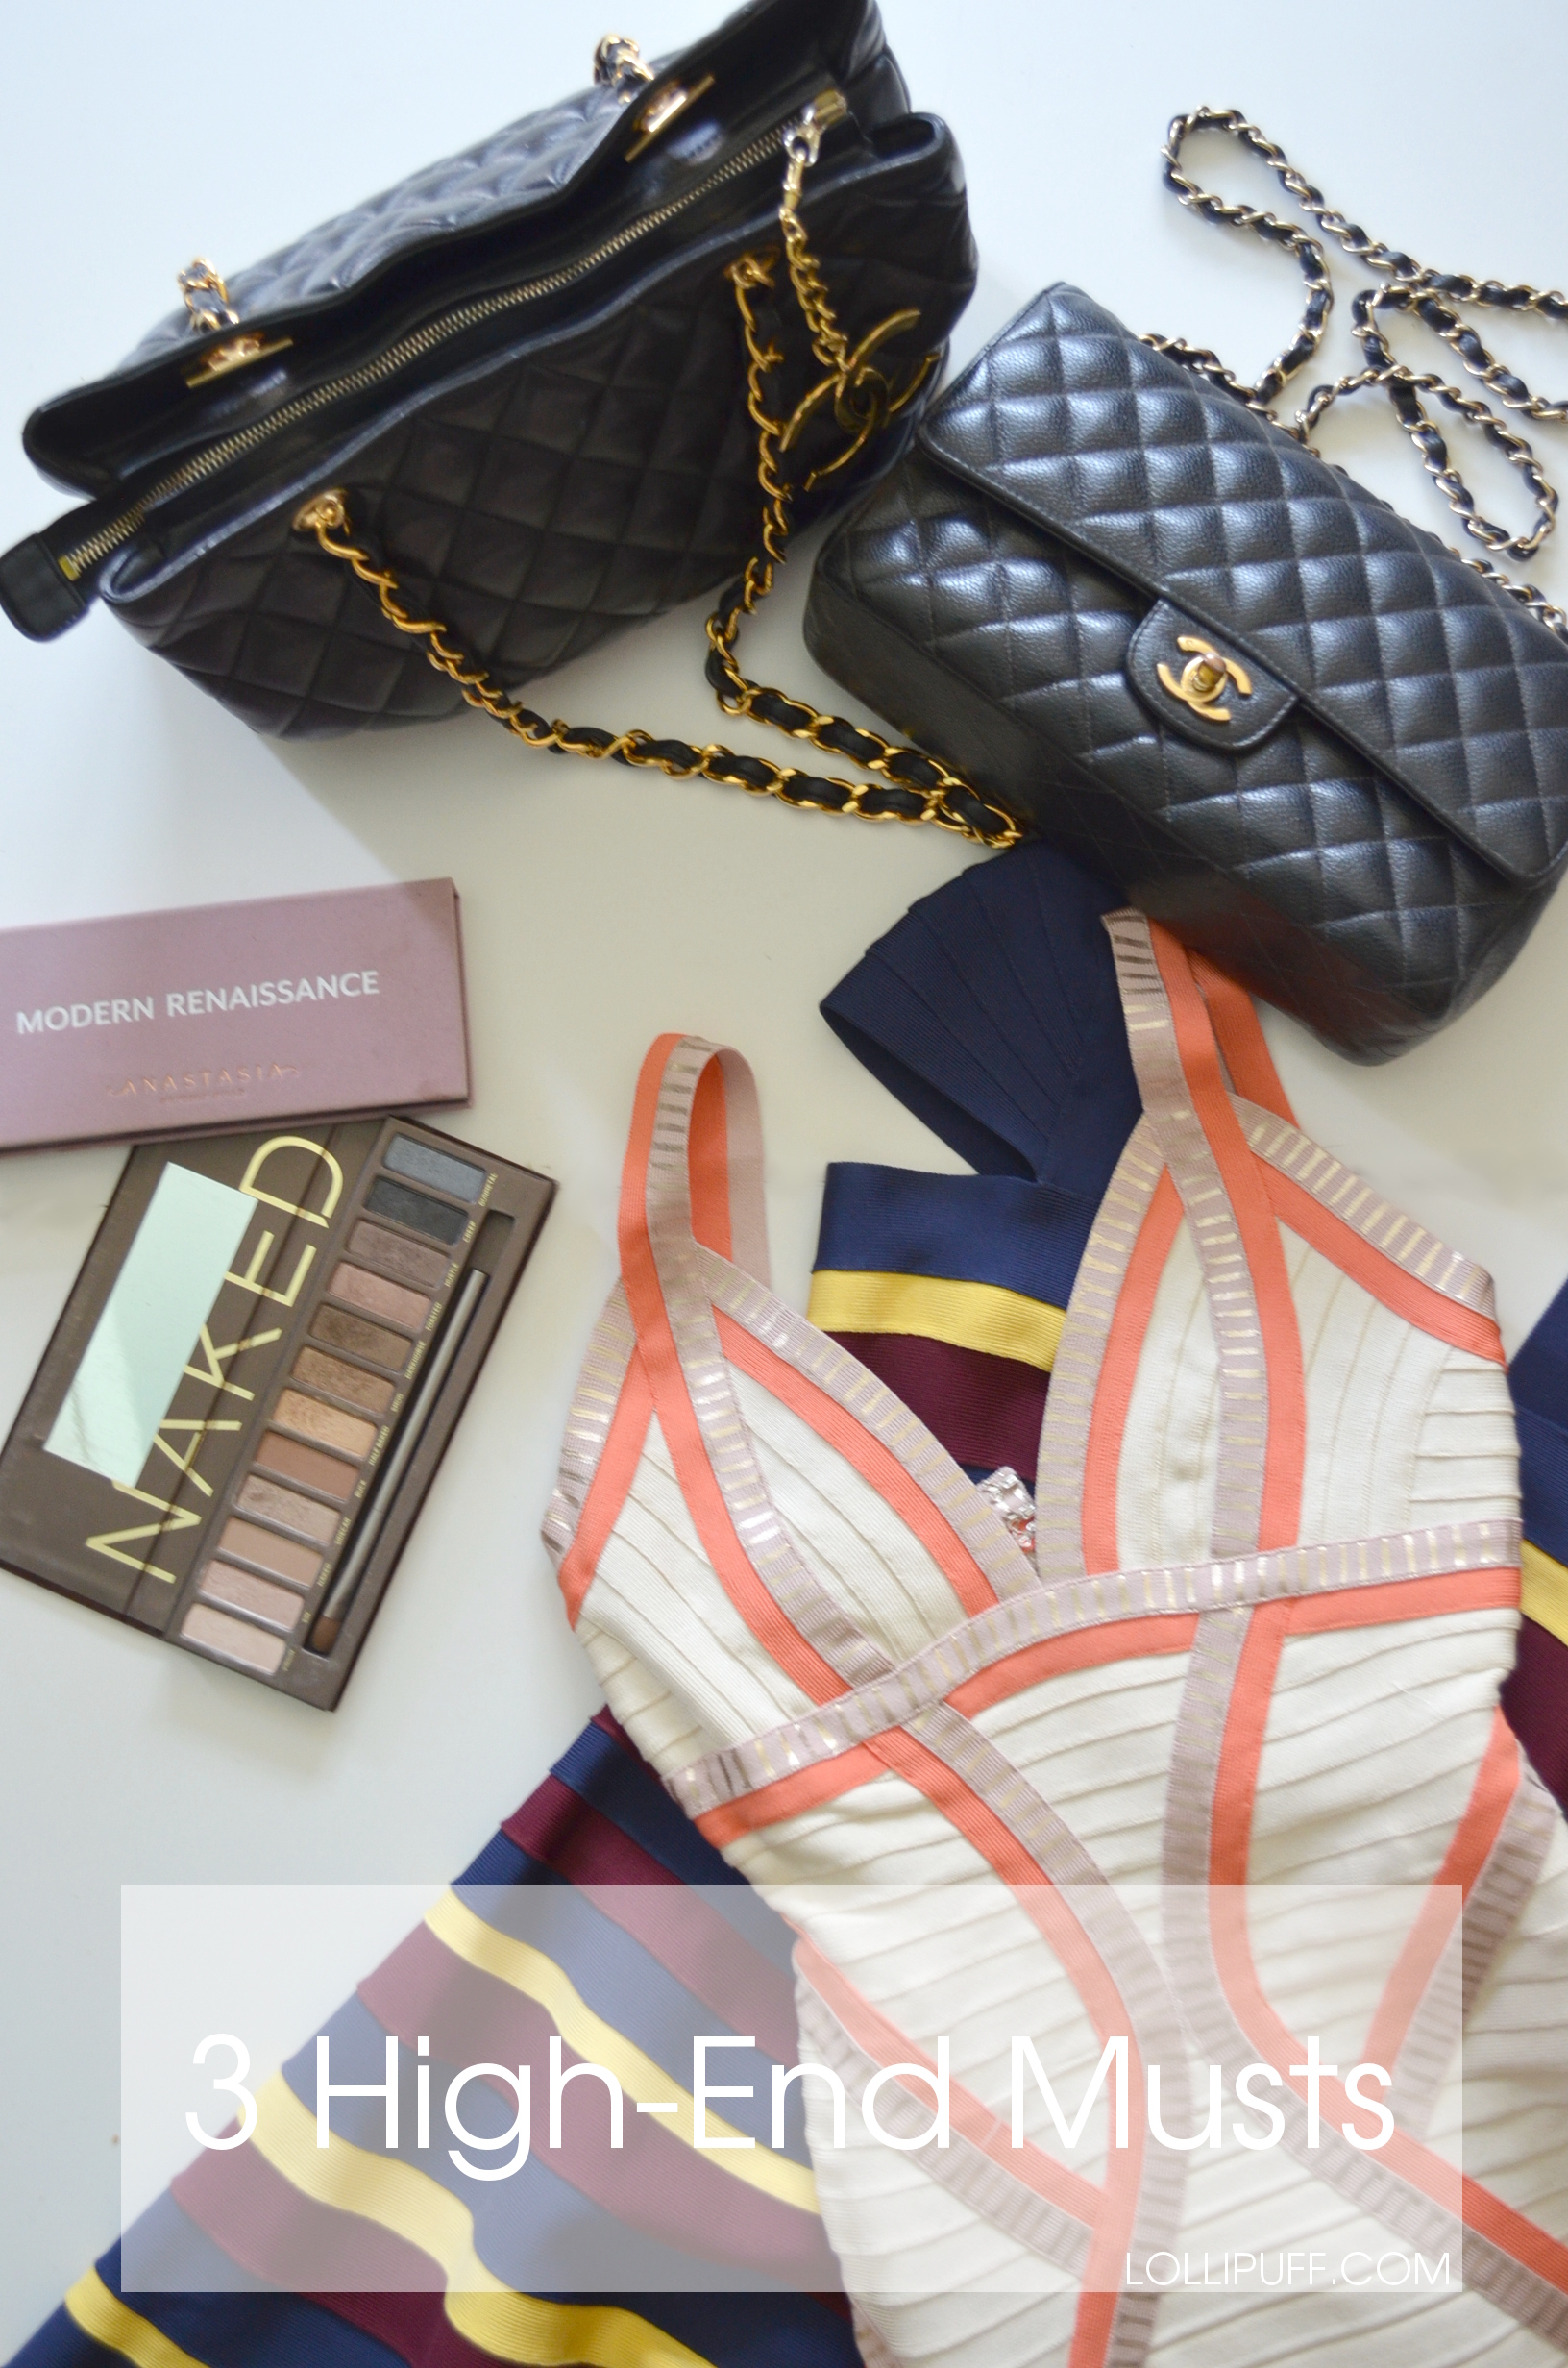 favorite luxury designer items